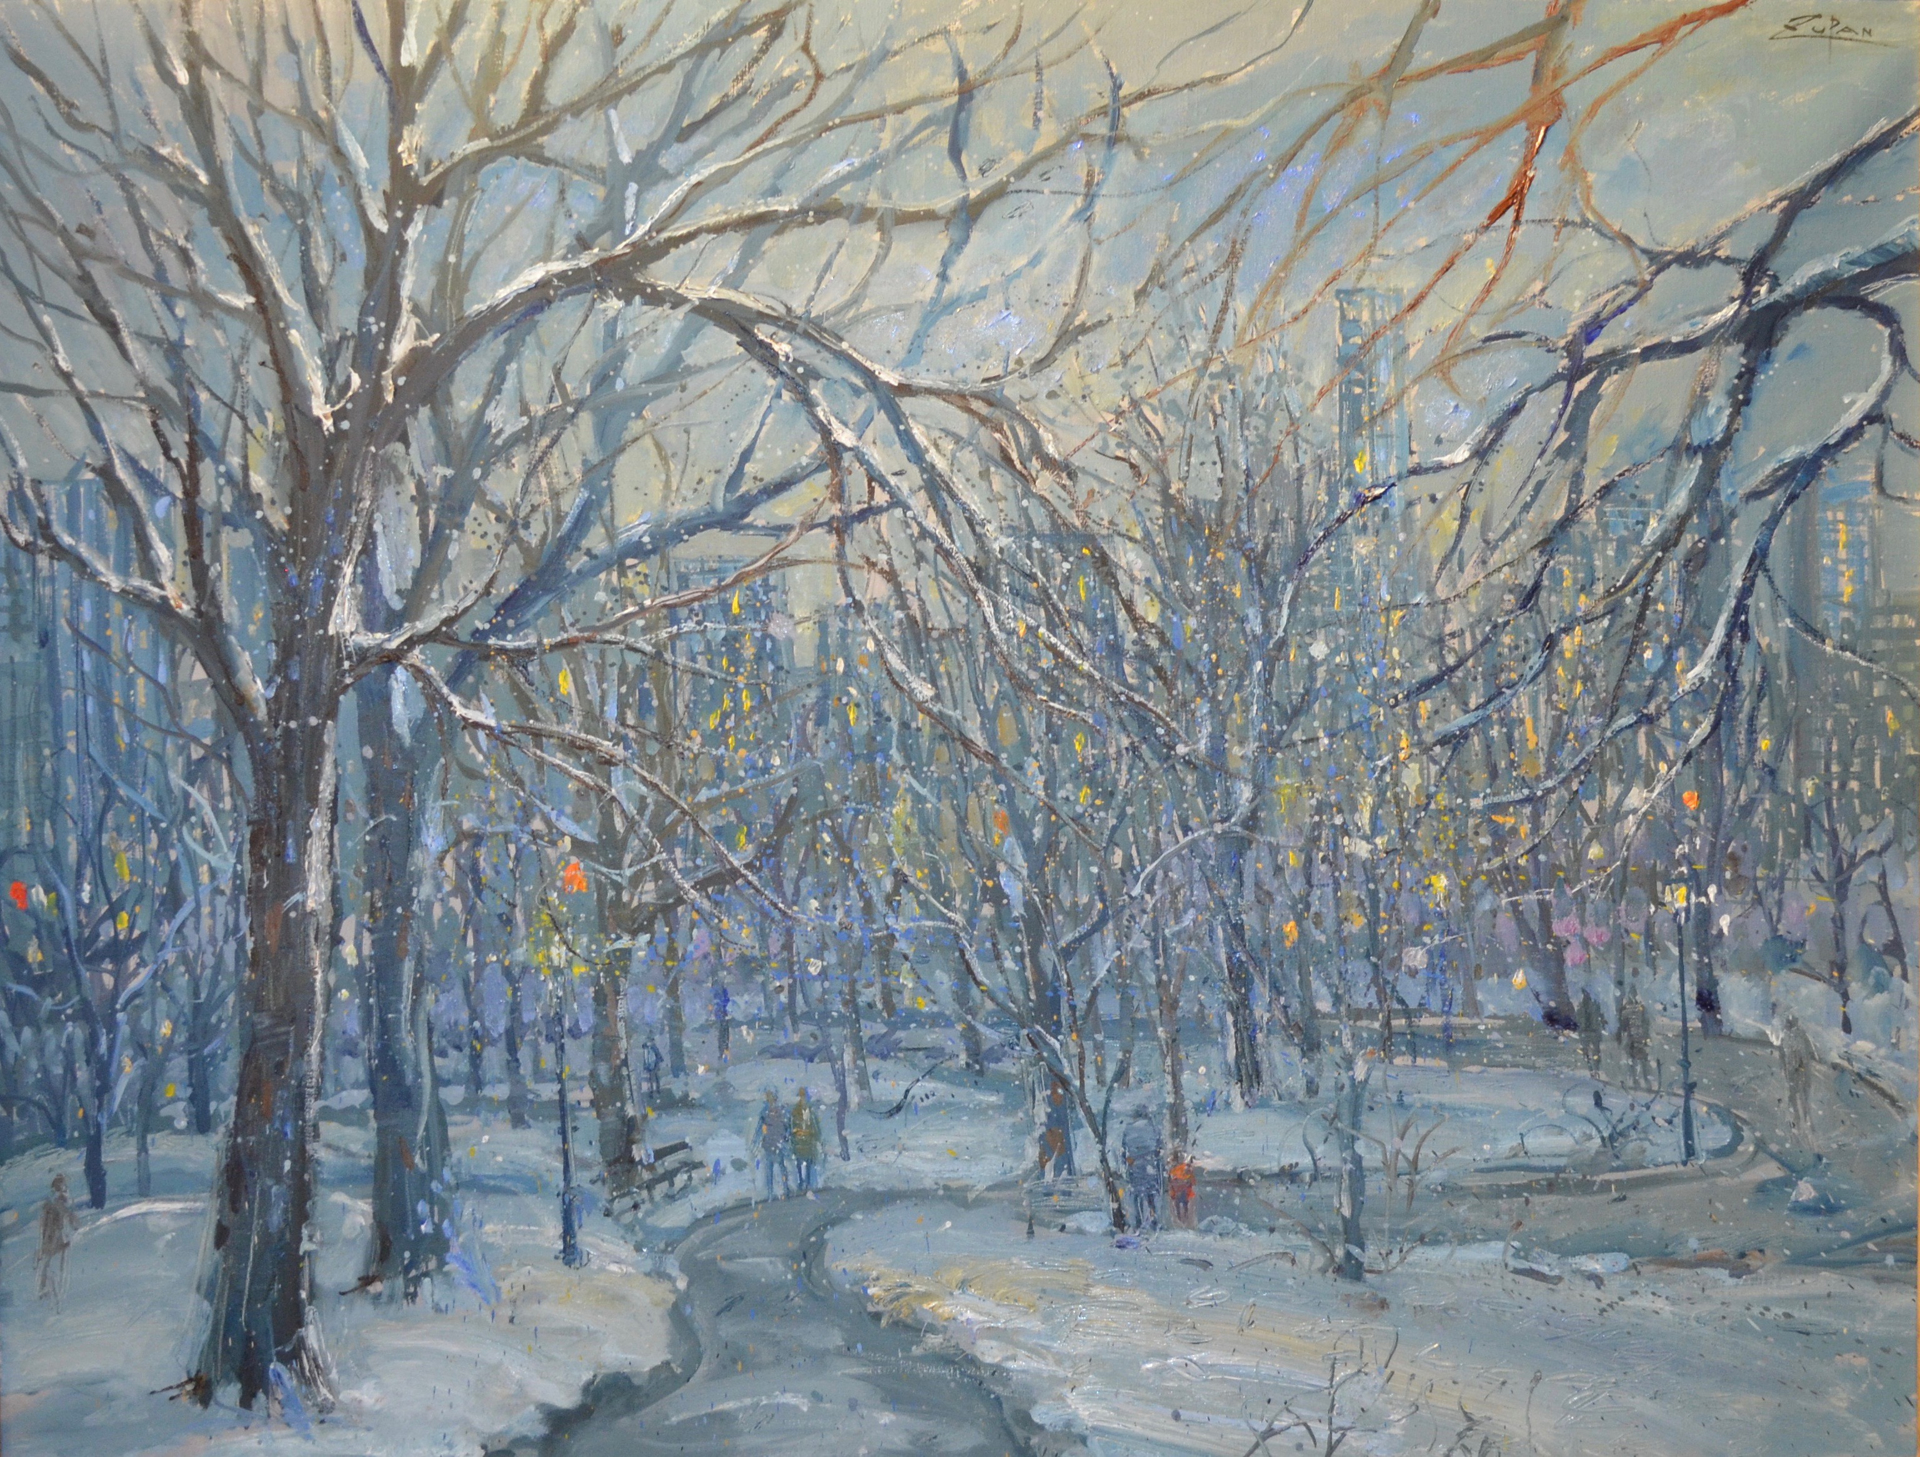 Path Through Central Park in the Snow by Bruno Zupan